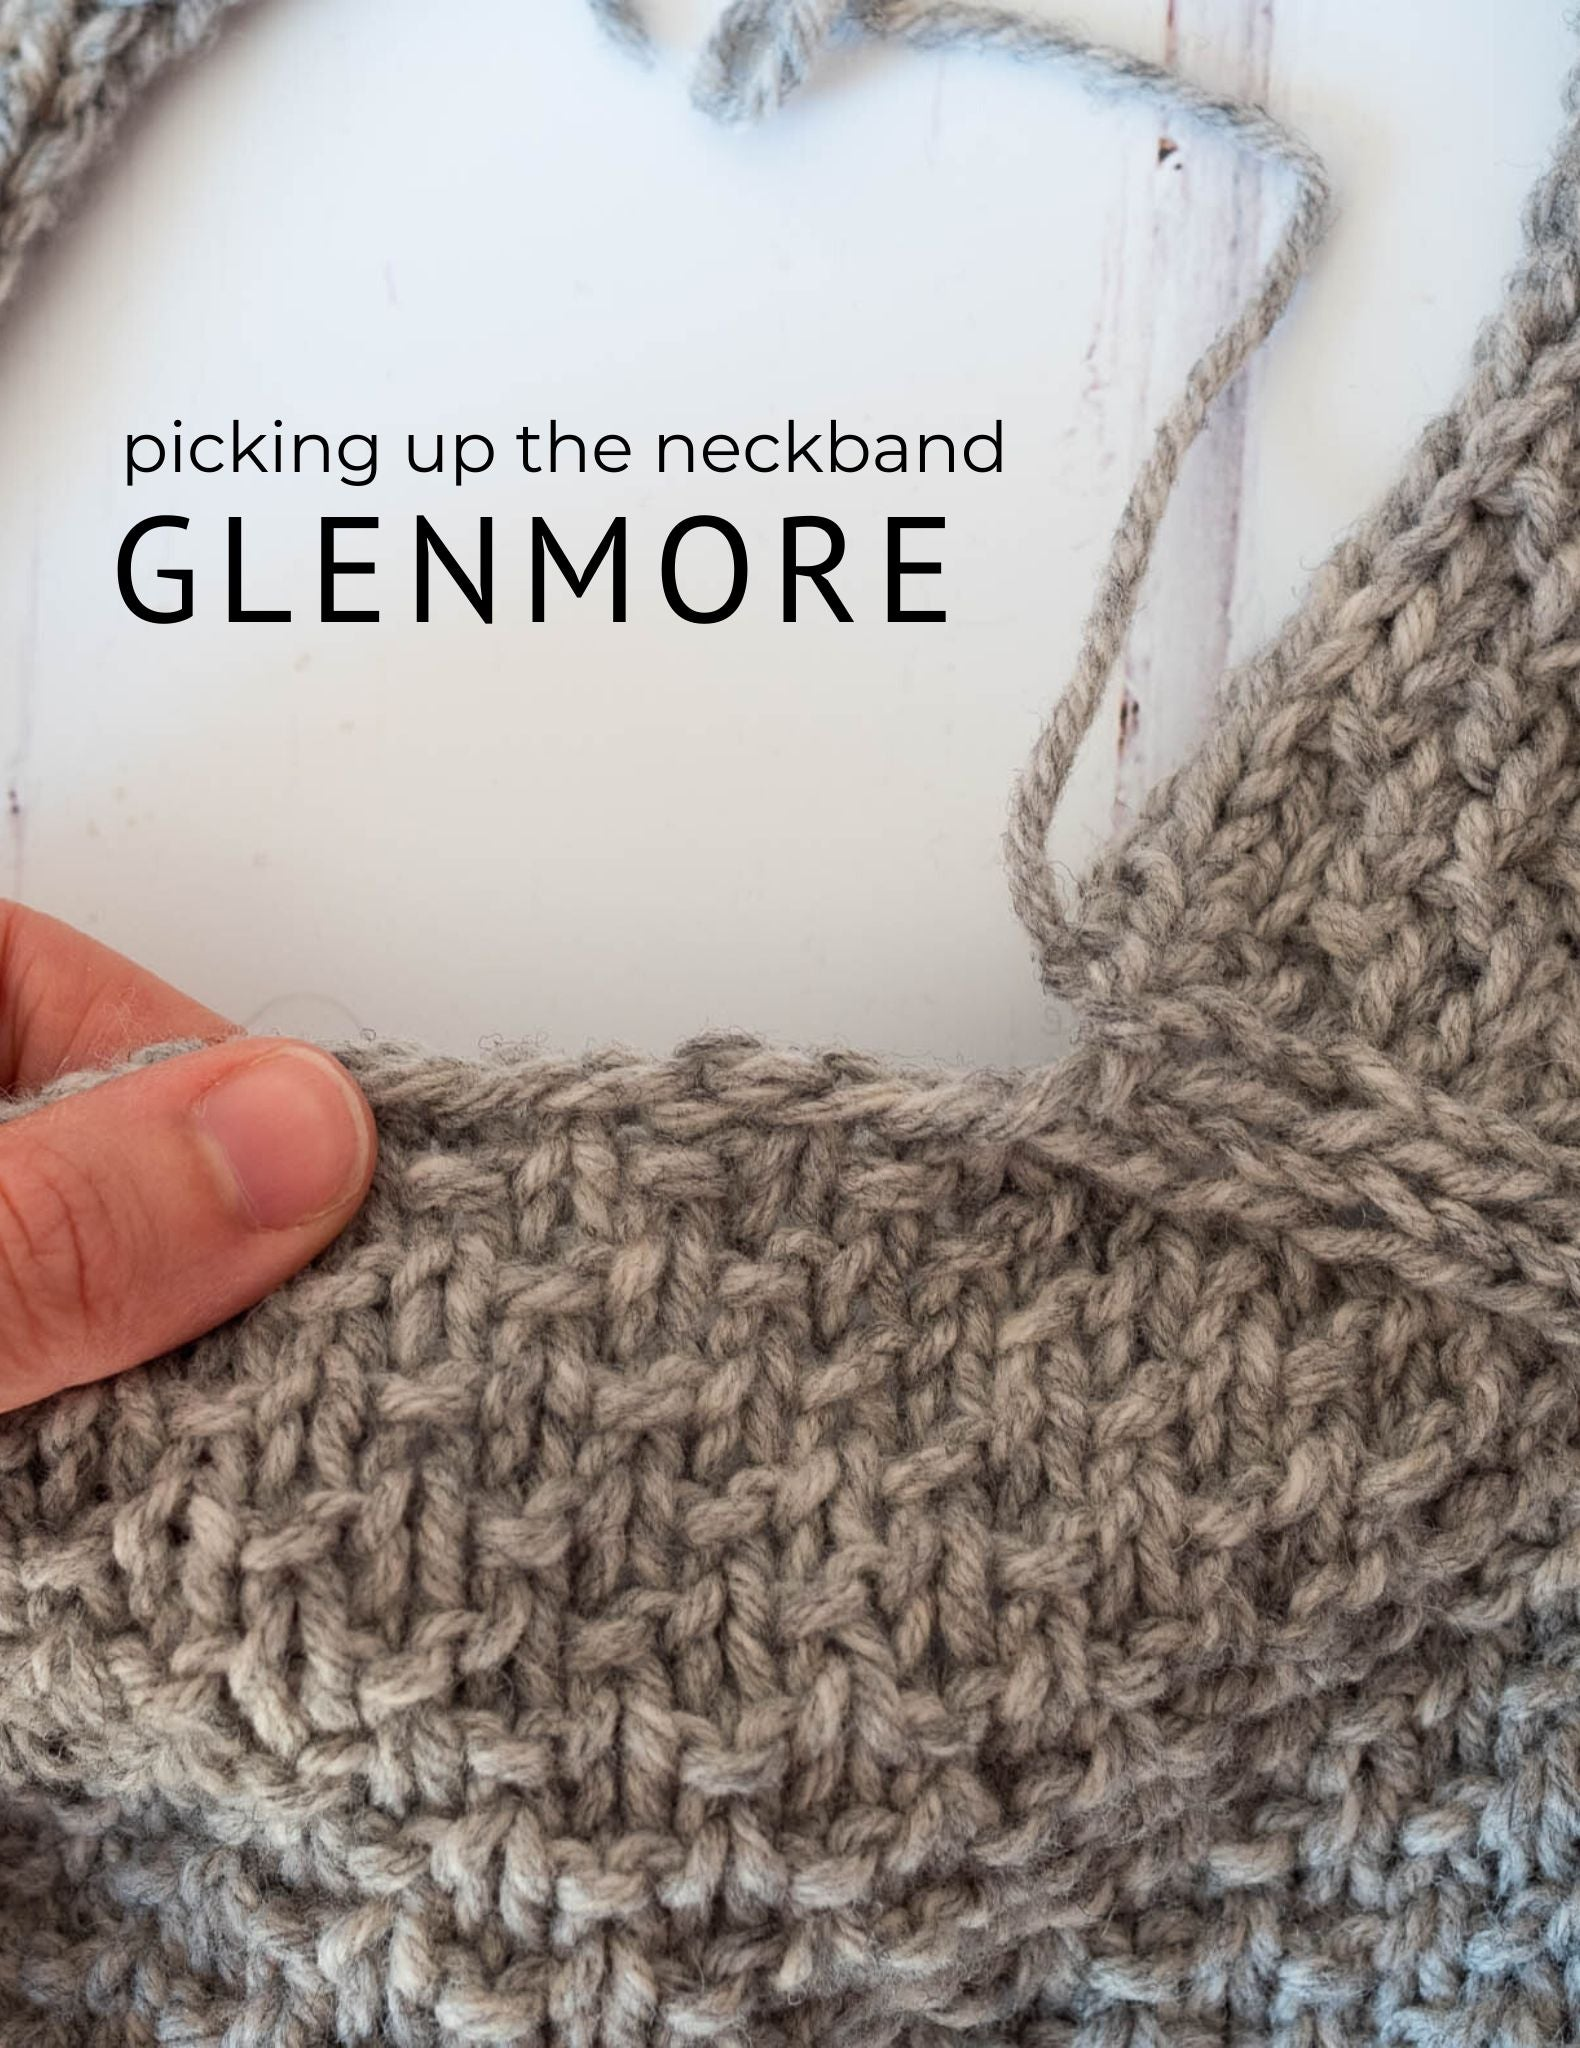 Picking up the neckband on Glenmore